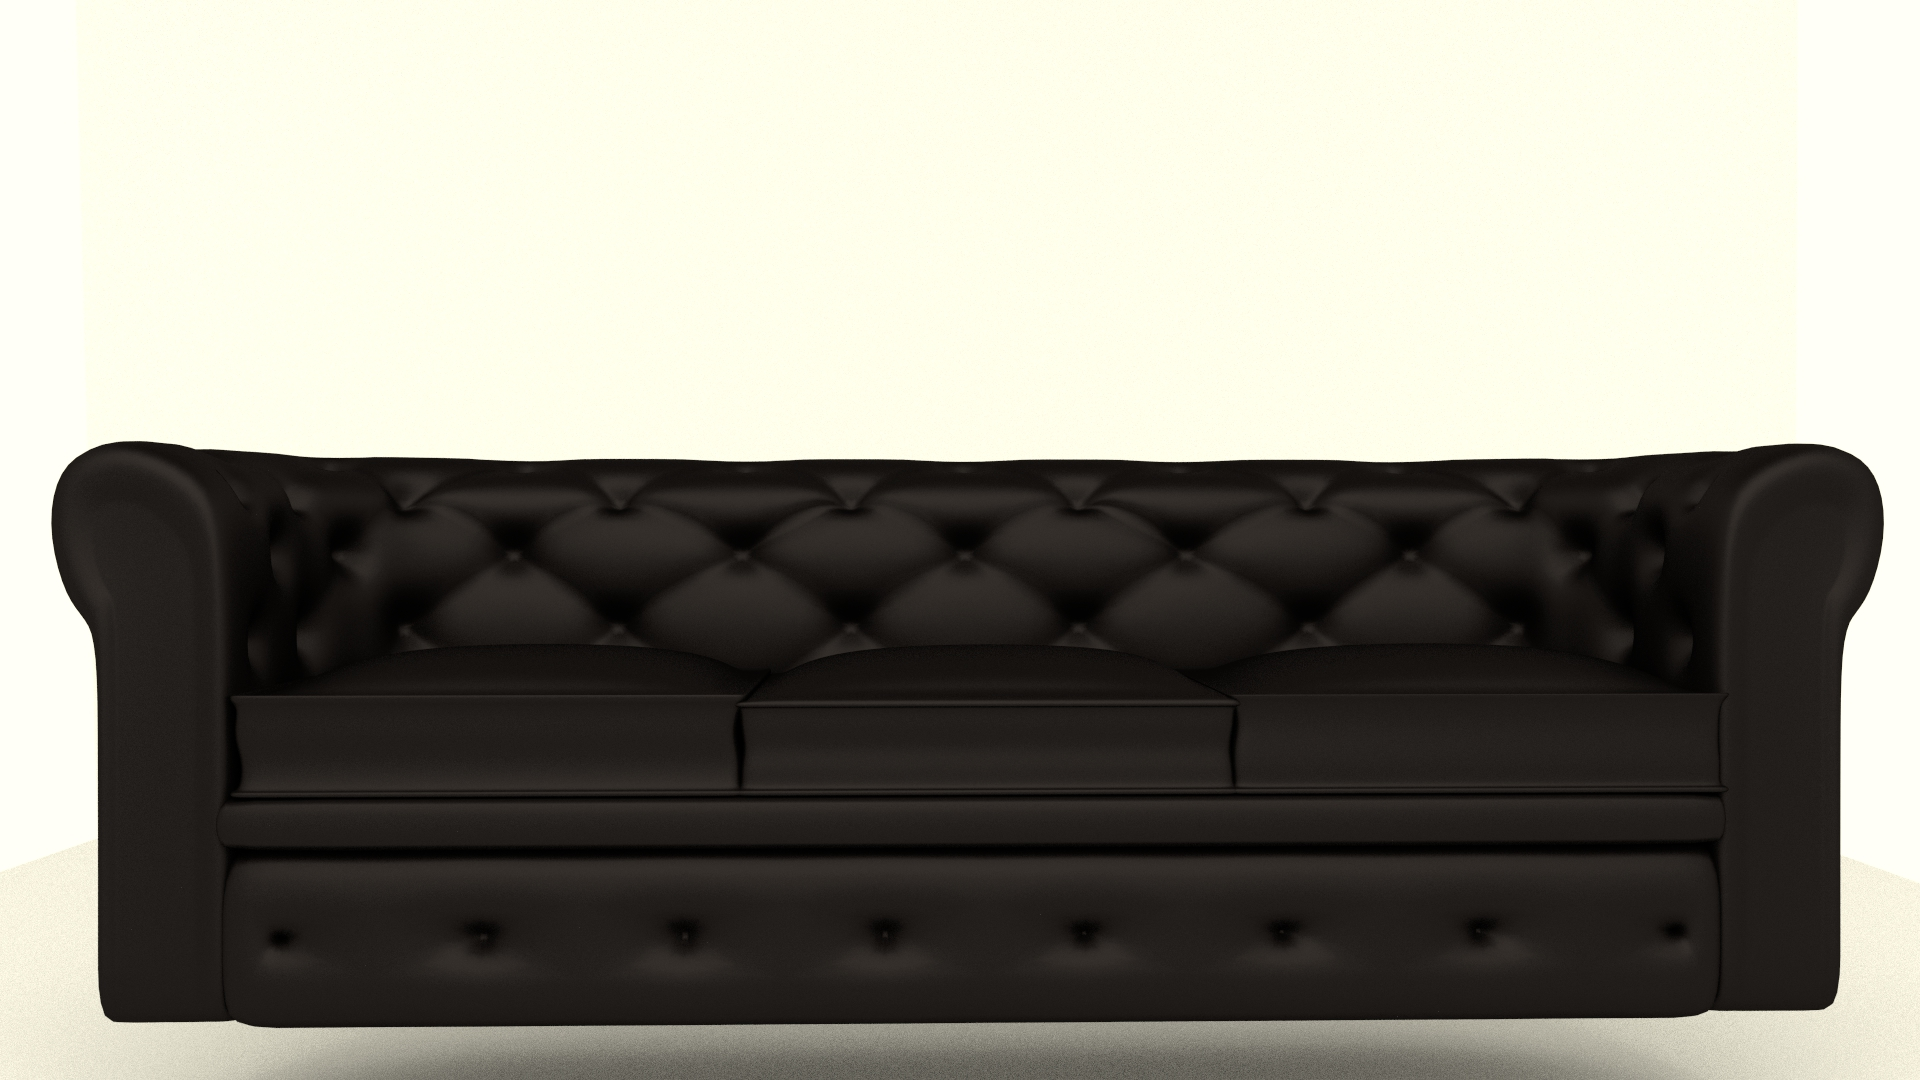 Sofa Test Sofa Leather Texture Materials And Textures Blender Artists